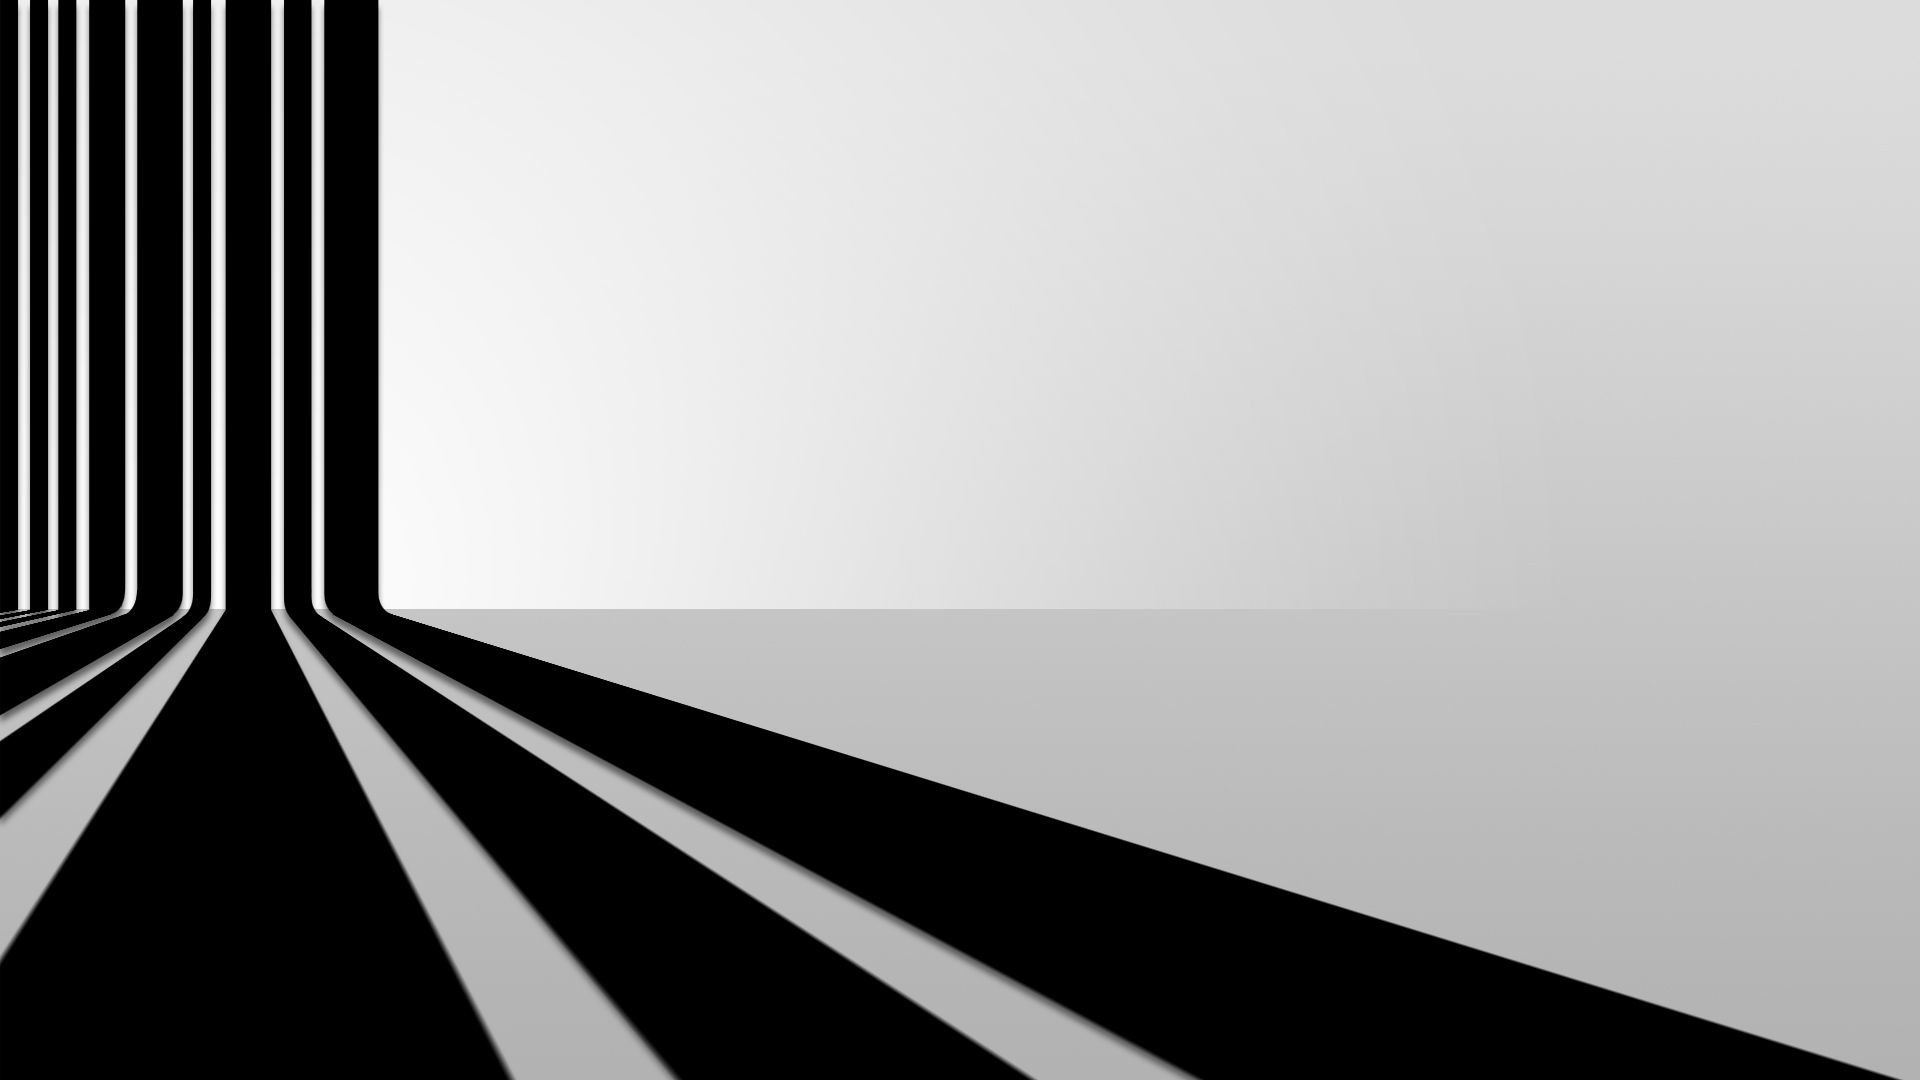 black and white abstract wallpaper 38